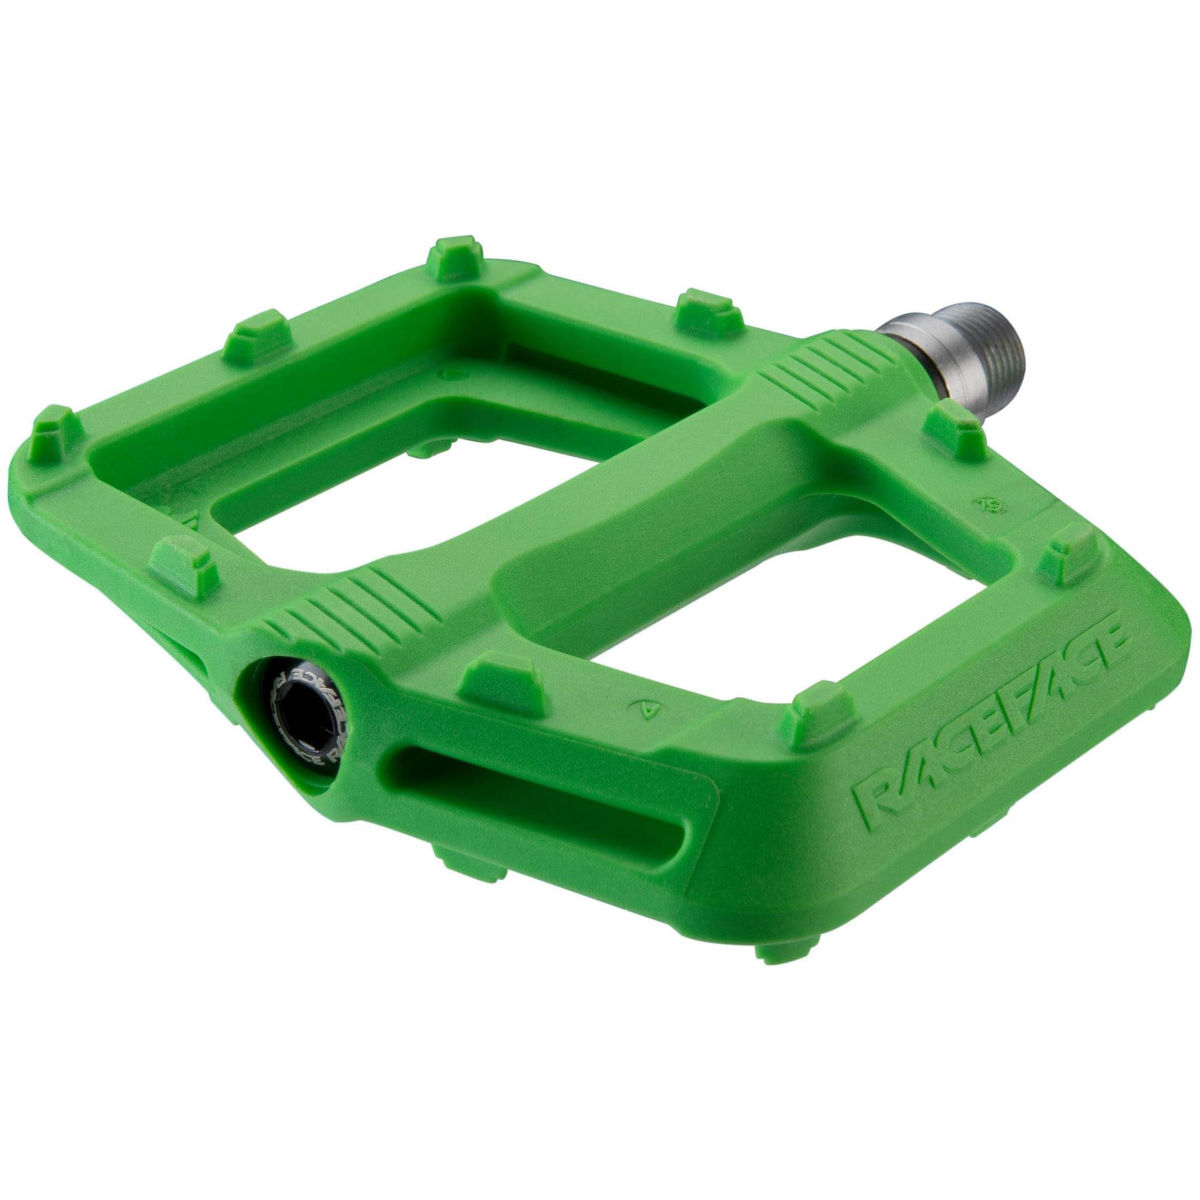 Race Face Ride Pedals - Pair Green  Flat Pedals